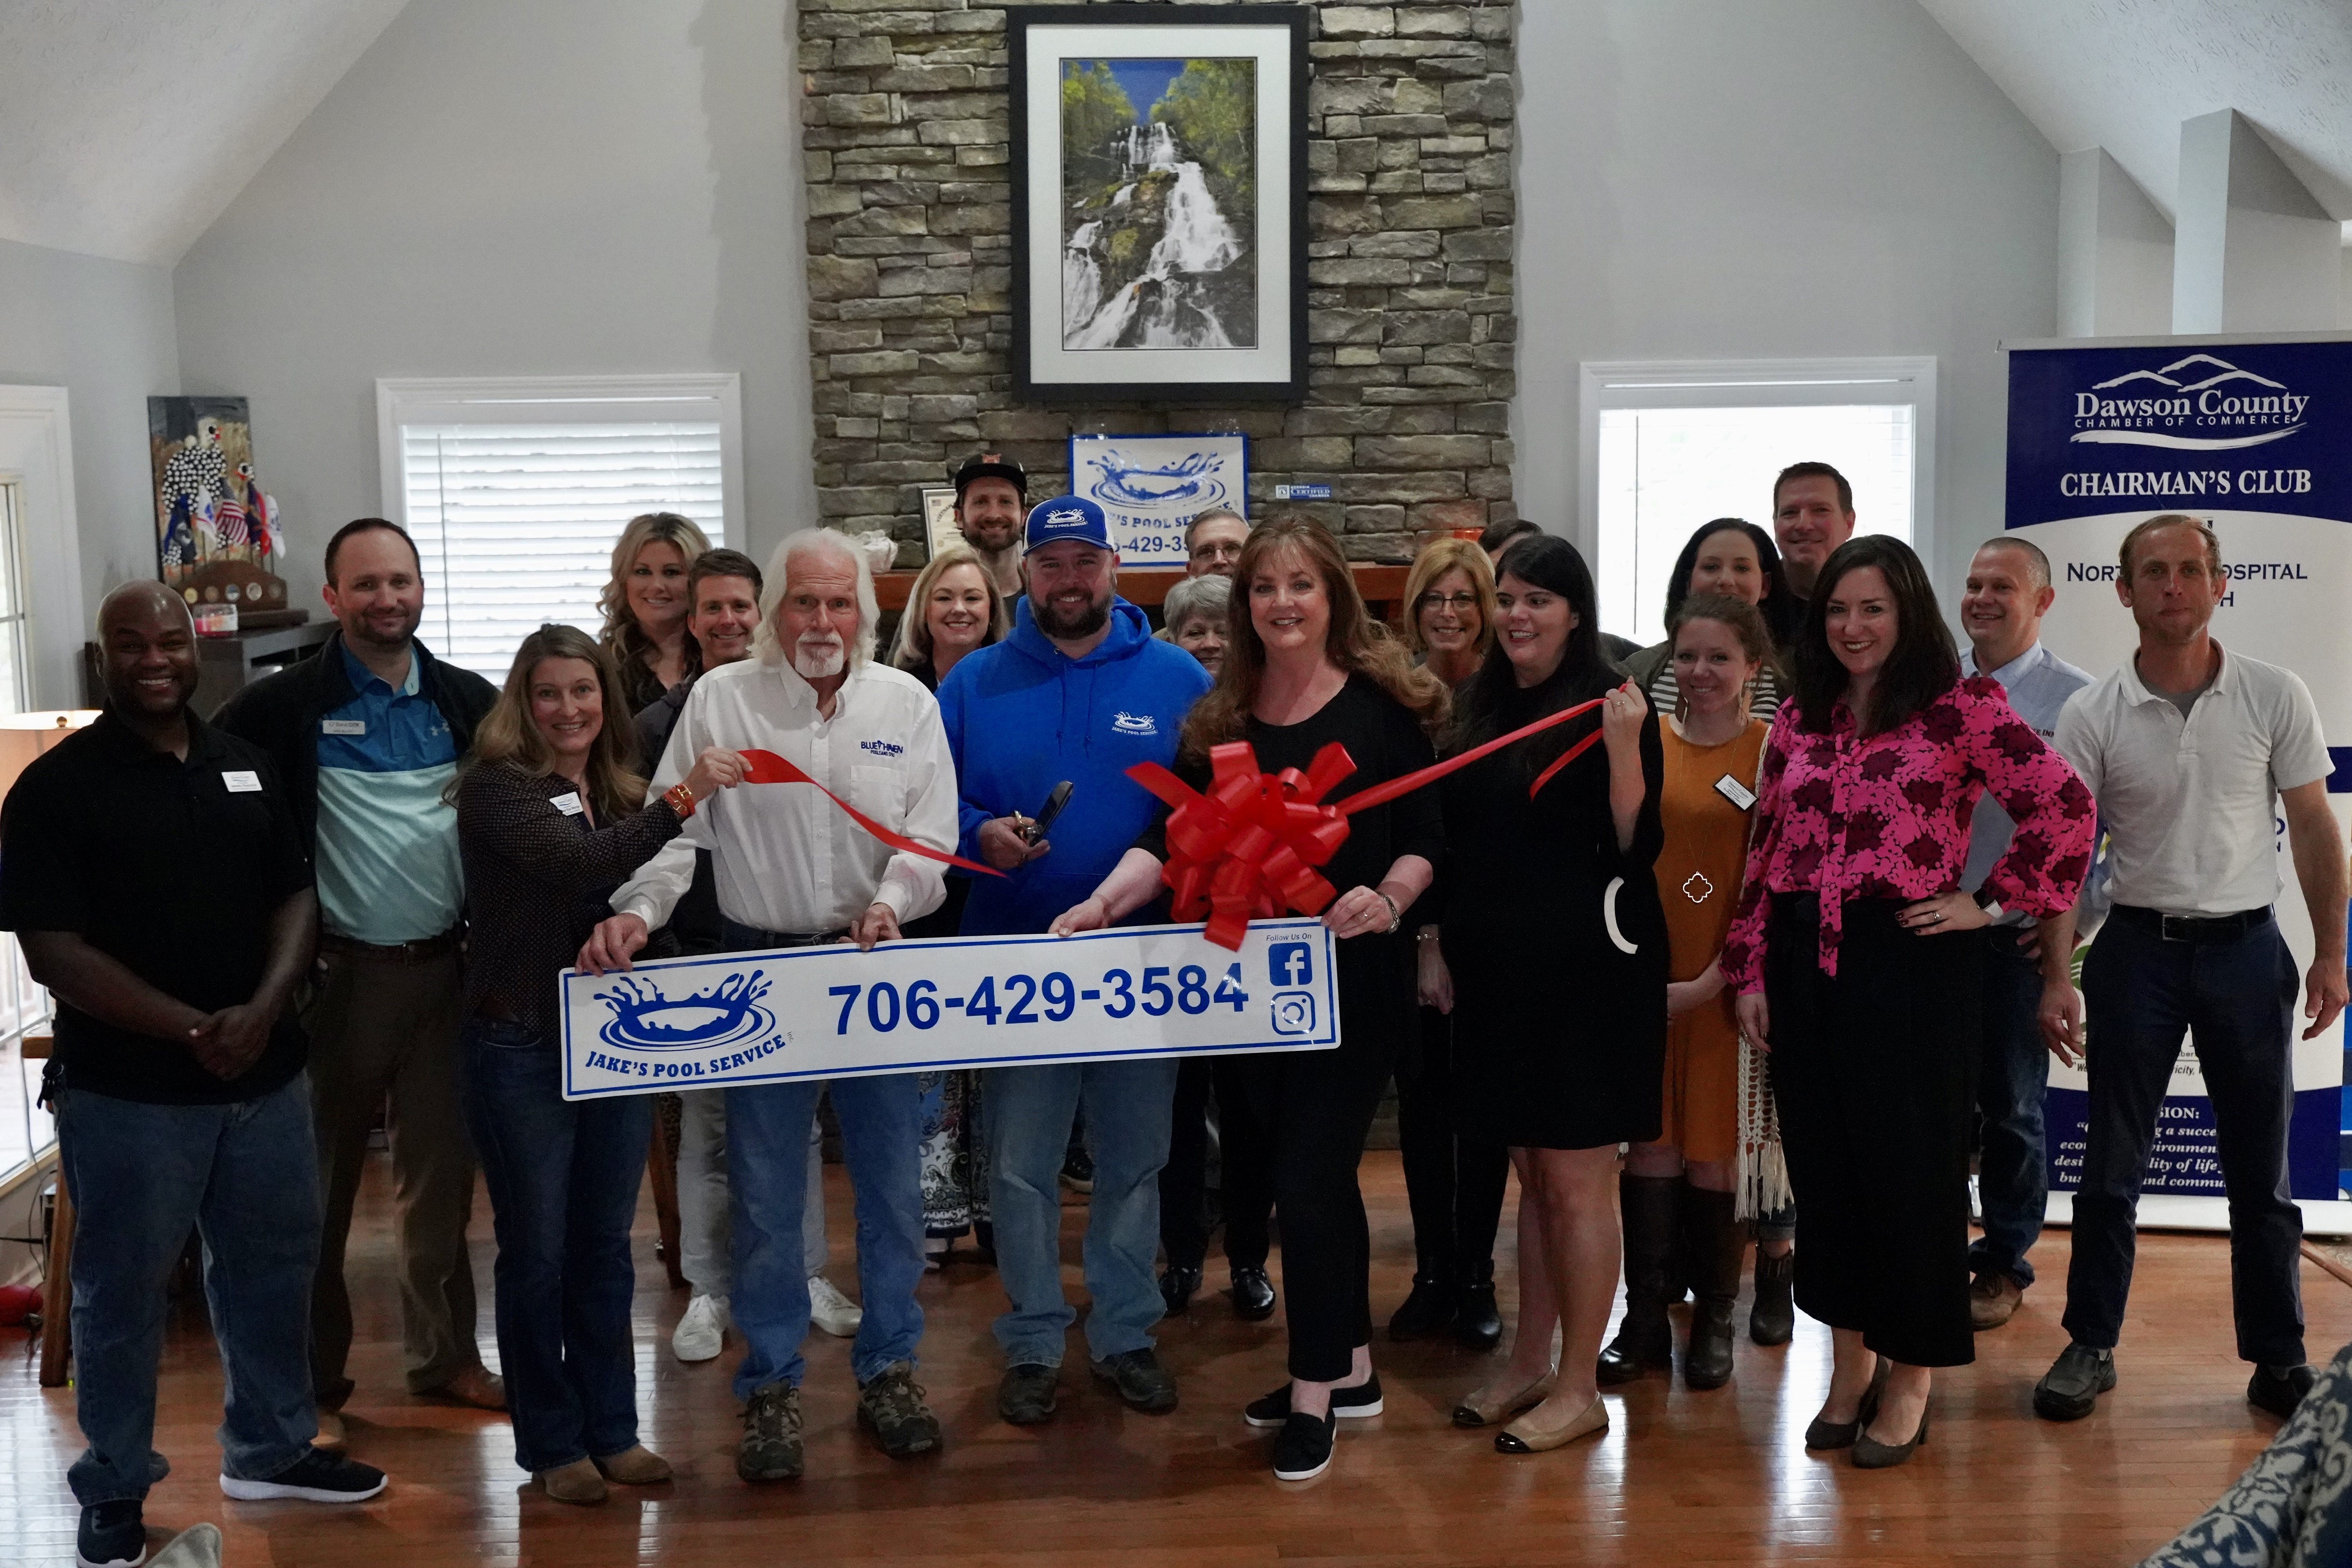 Ribbon cutting ceremony with Jake's Pool Service!